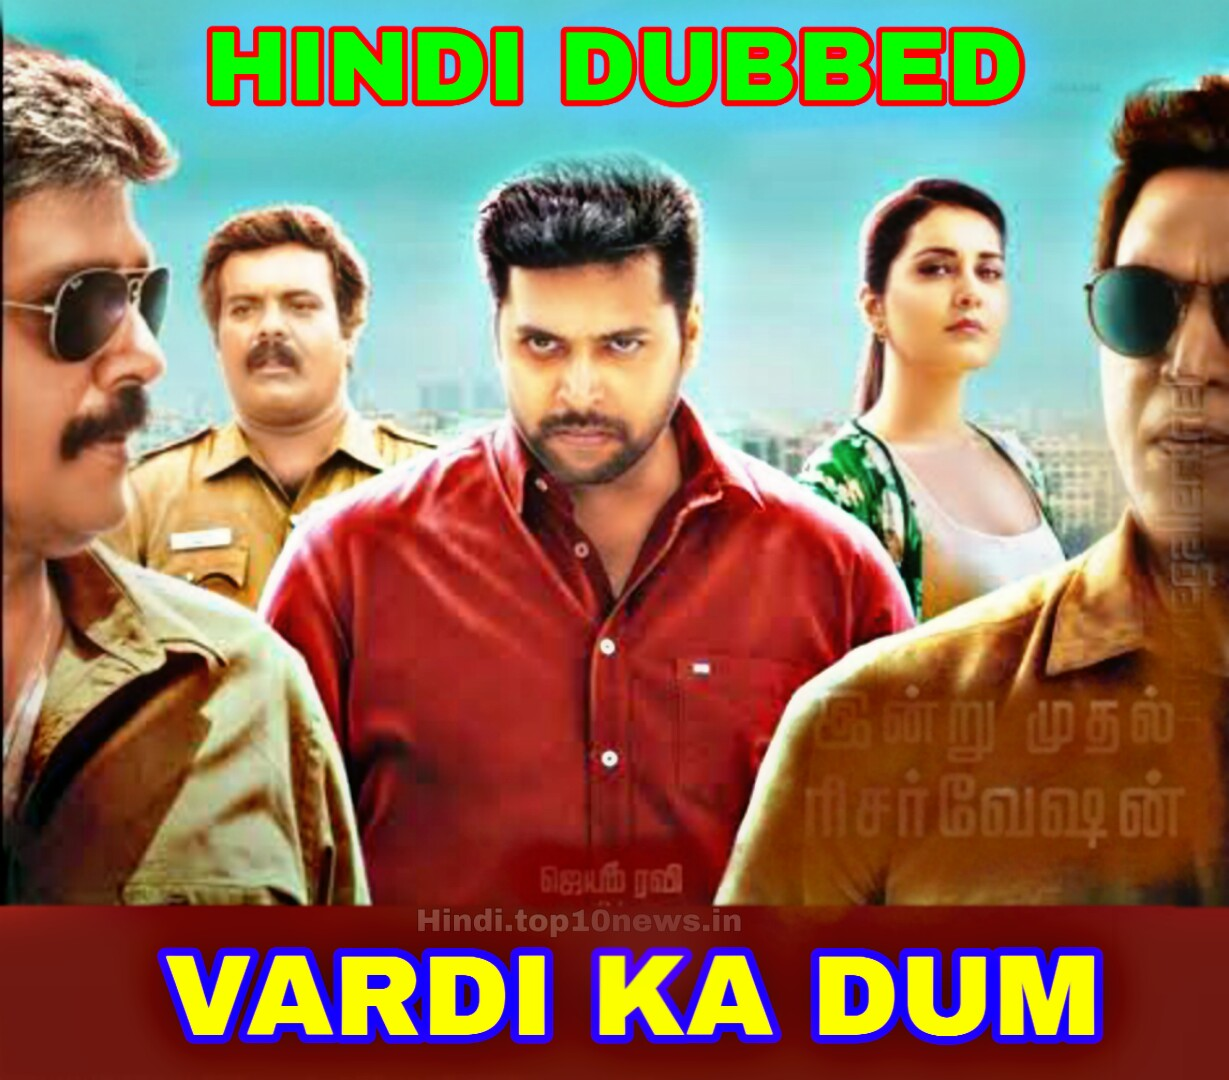 Vardi Ka Dum Hindi Dubbed Full Movie 720p hd | 480p mp4 Download filmywap, filmyzilla, Jalshamoviez, mp4moviez